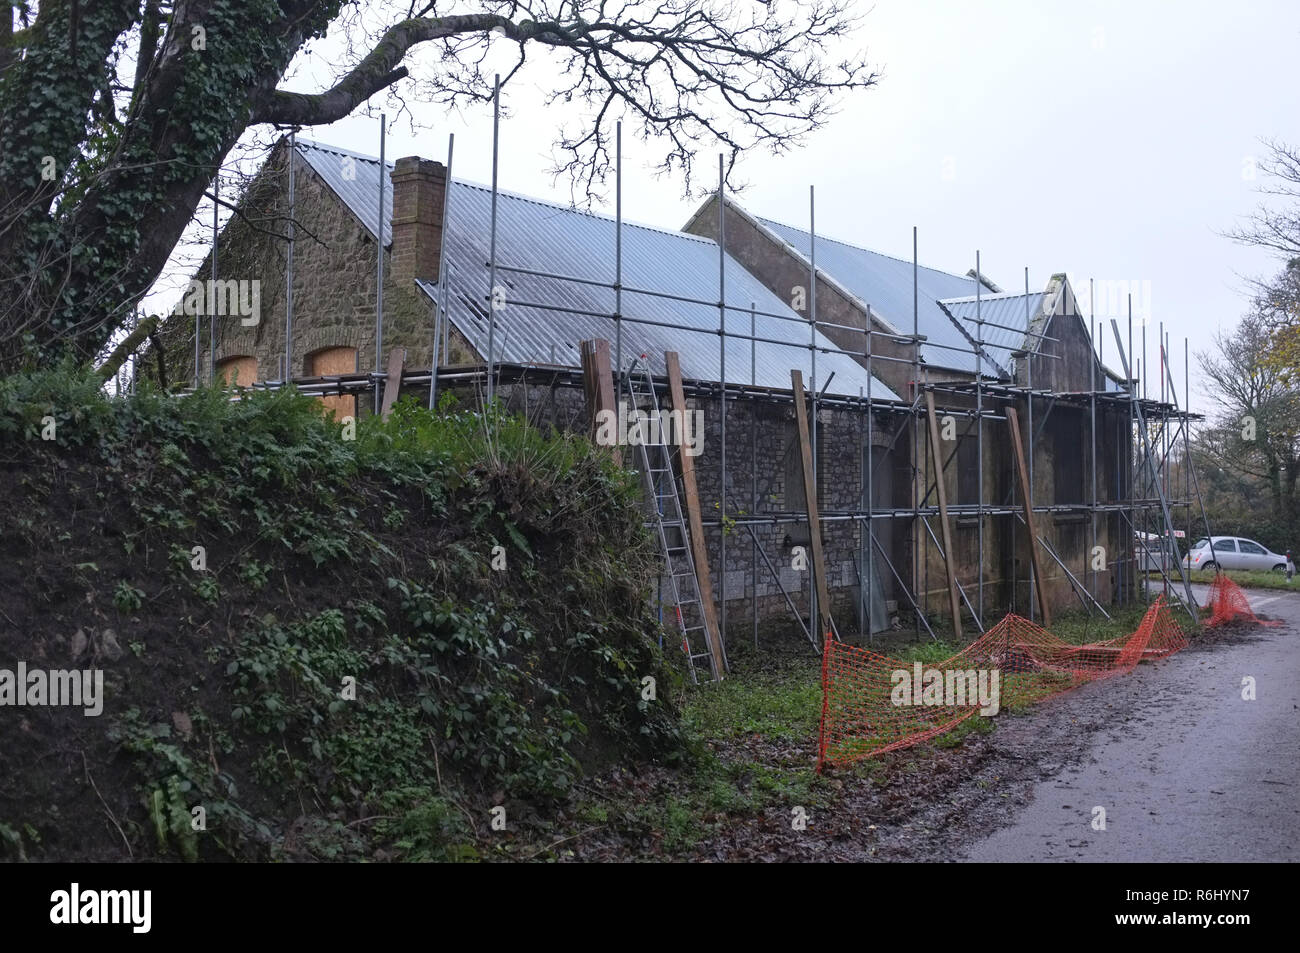 Scaffolding on an old Methodist chapel church being converted into a house. Rural development. Cornwall. - Stock Image